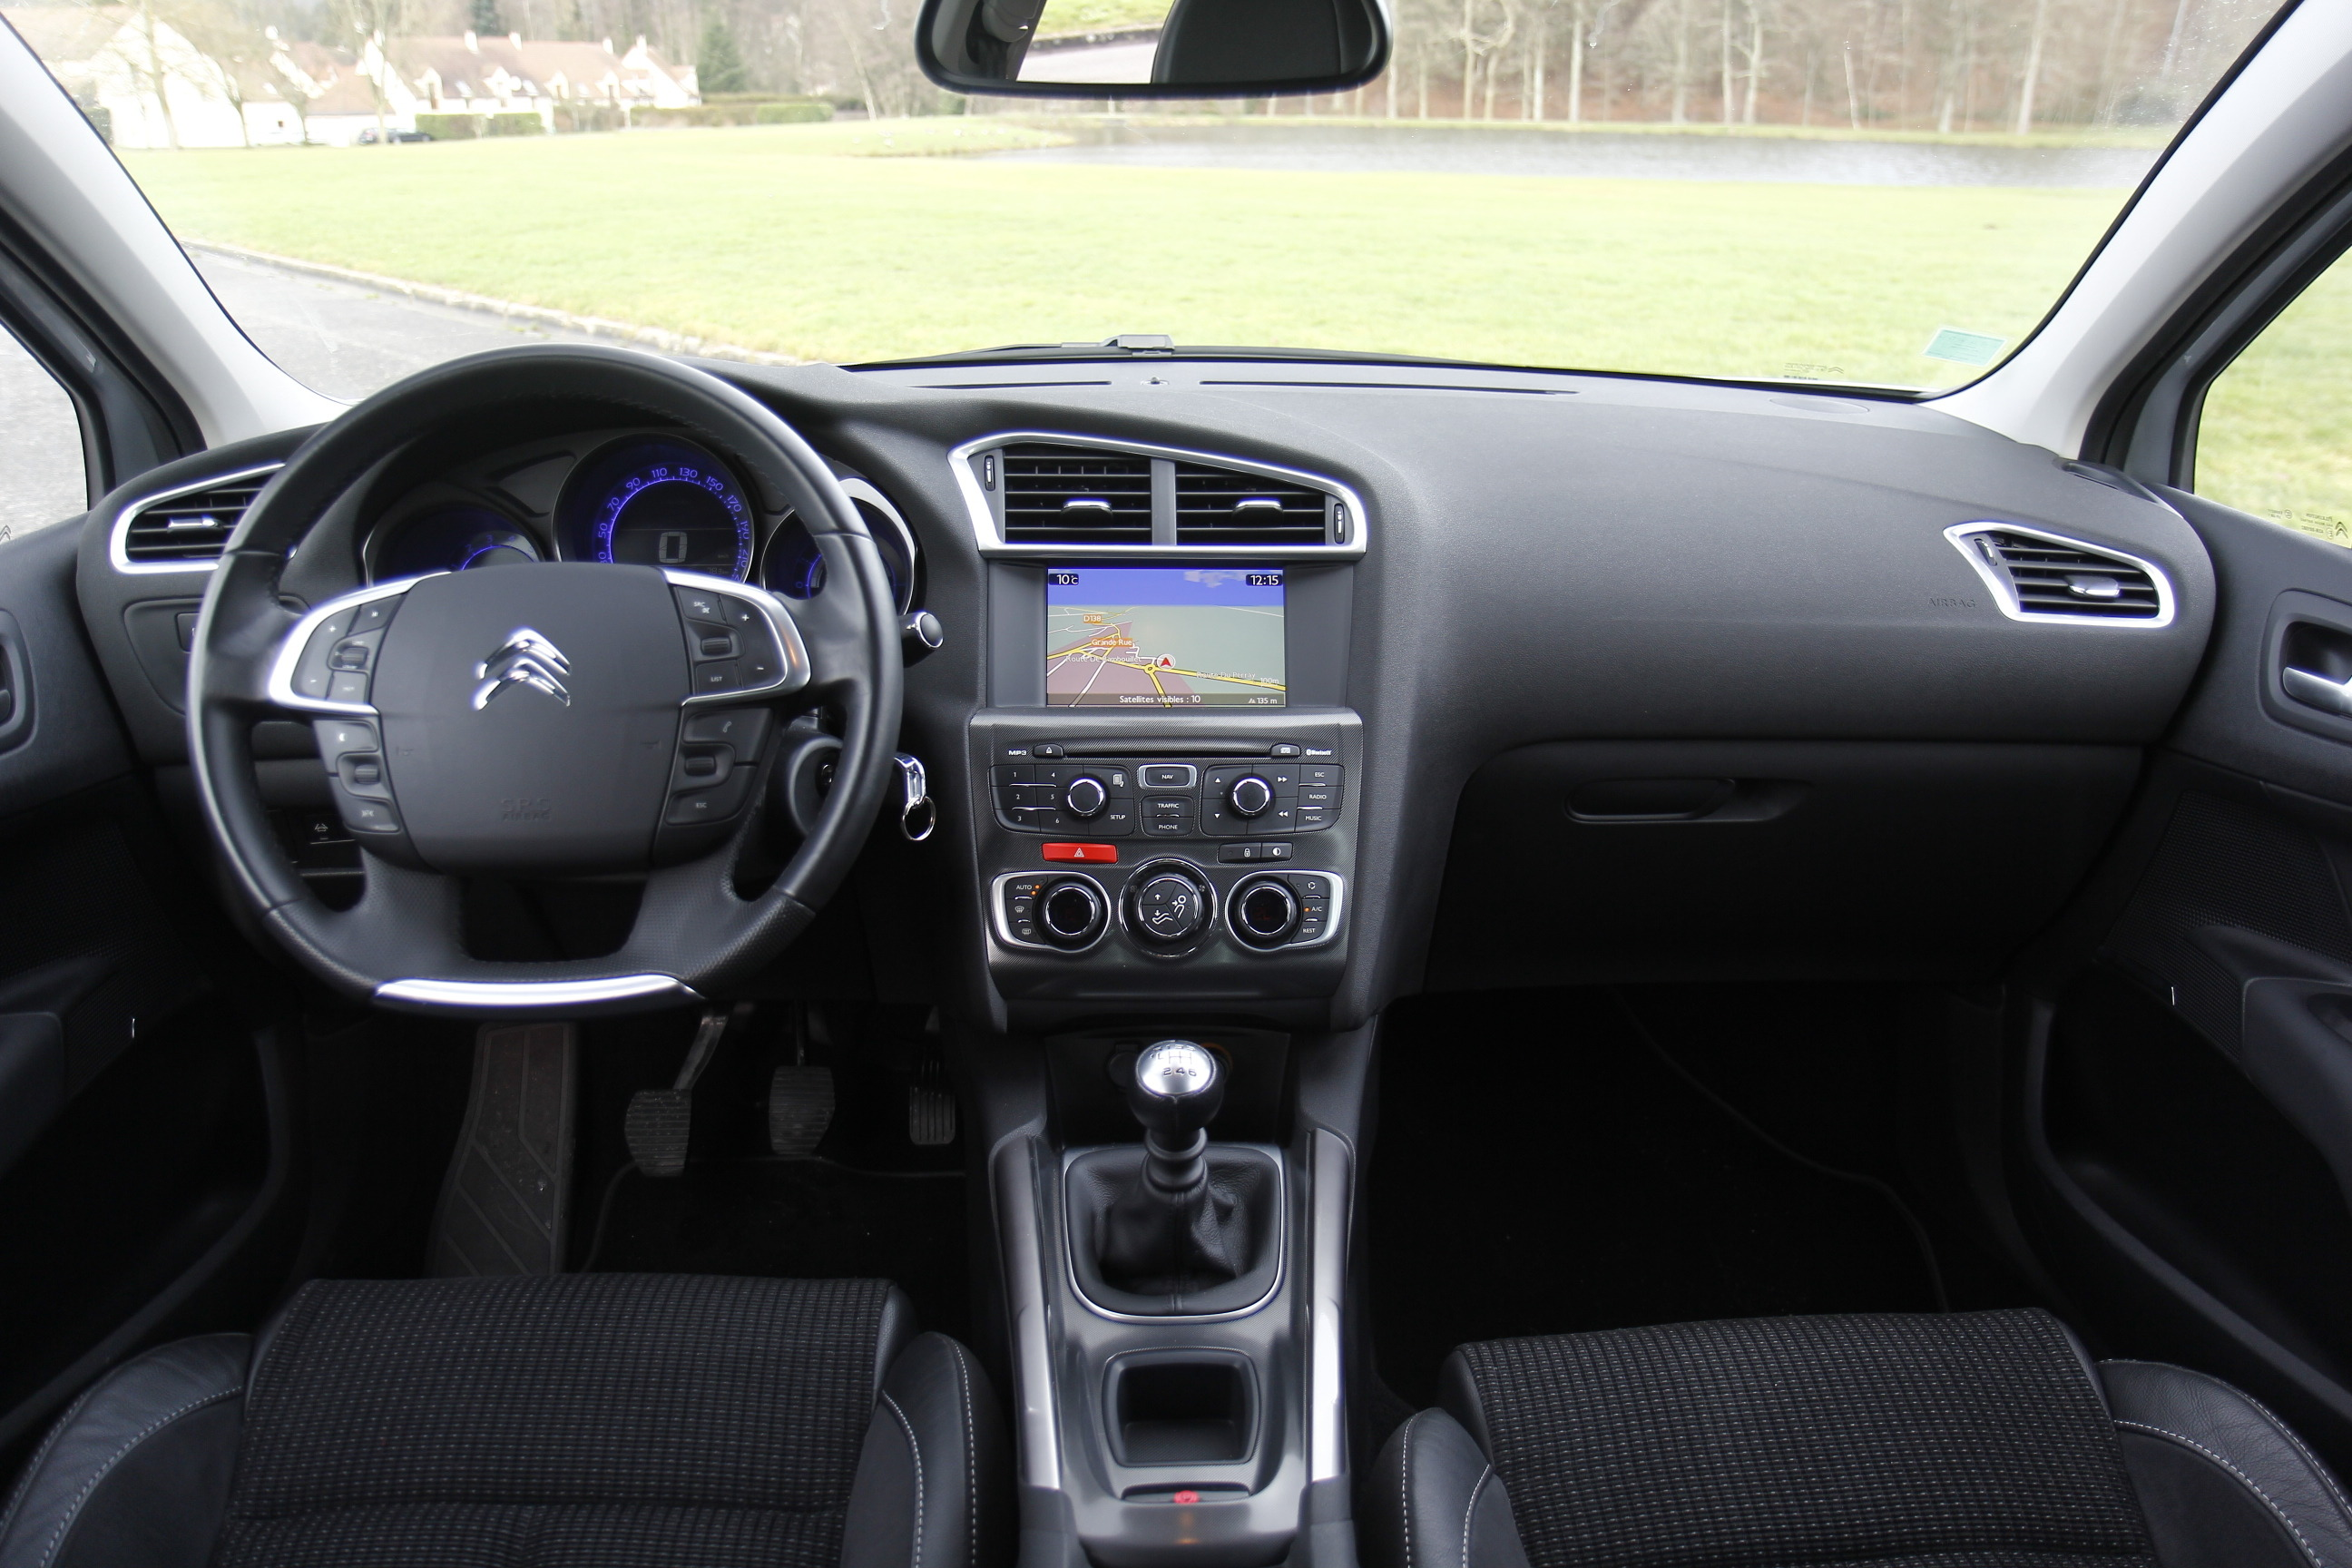 Comparatif vid o peugeot 308 renault m gane citro n c4 for Photo en interieur